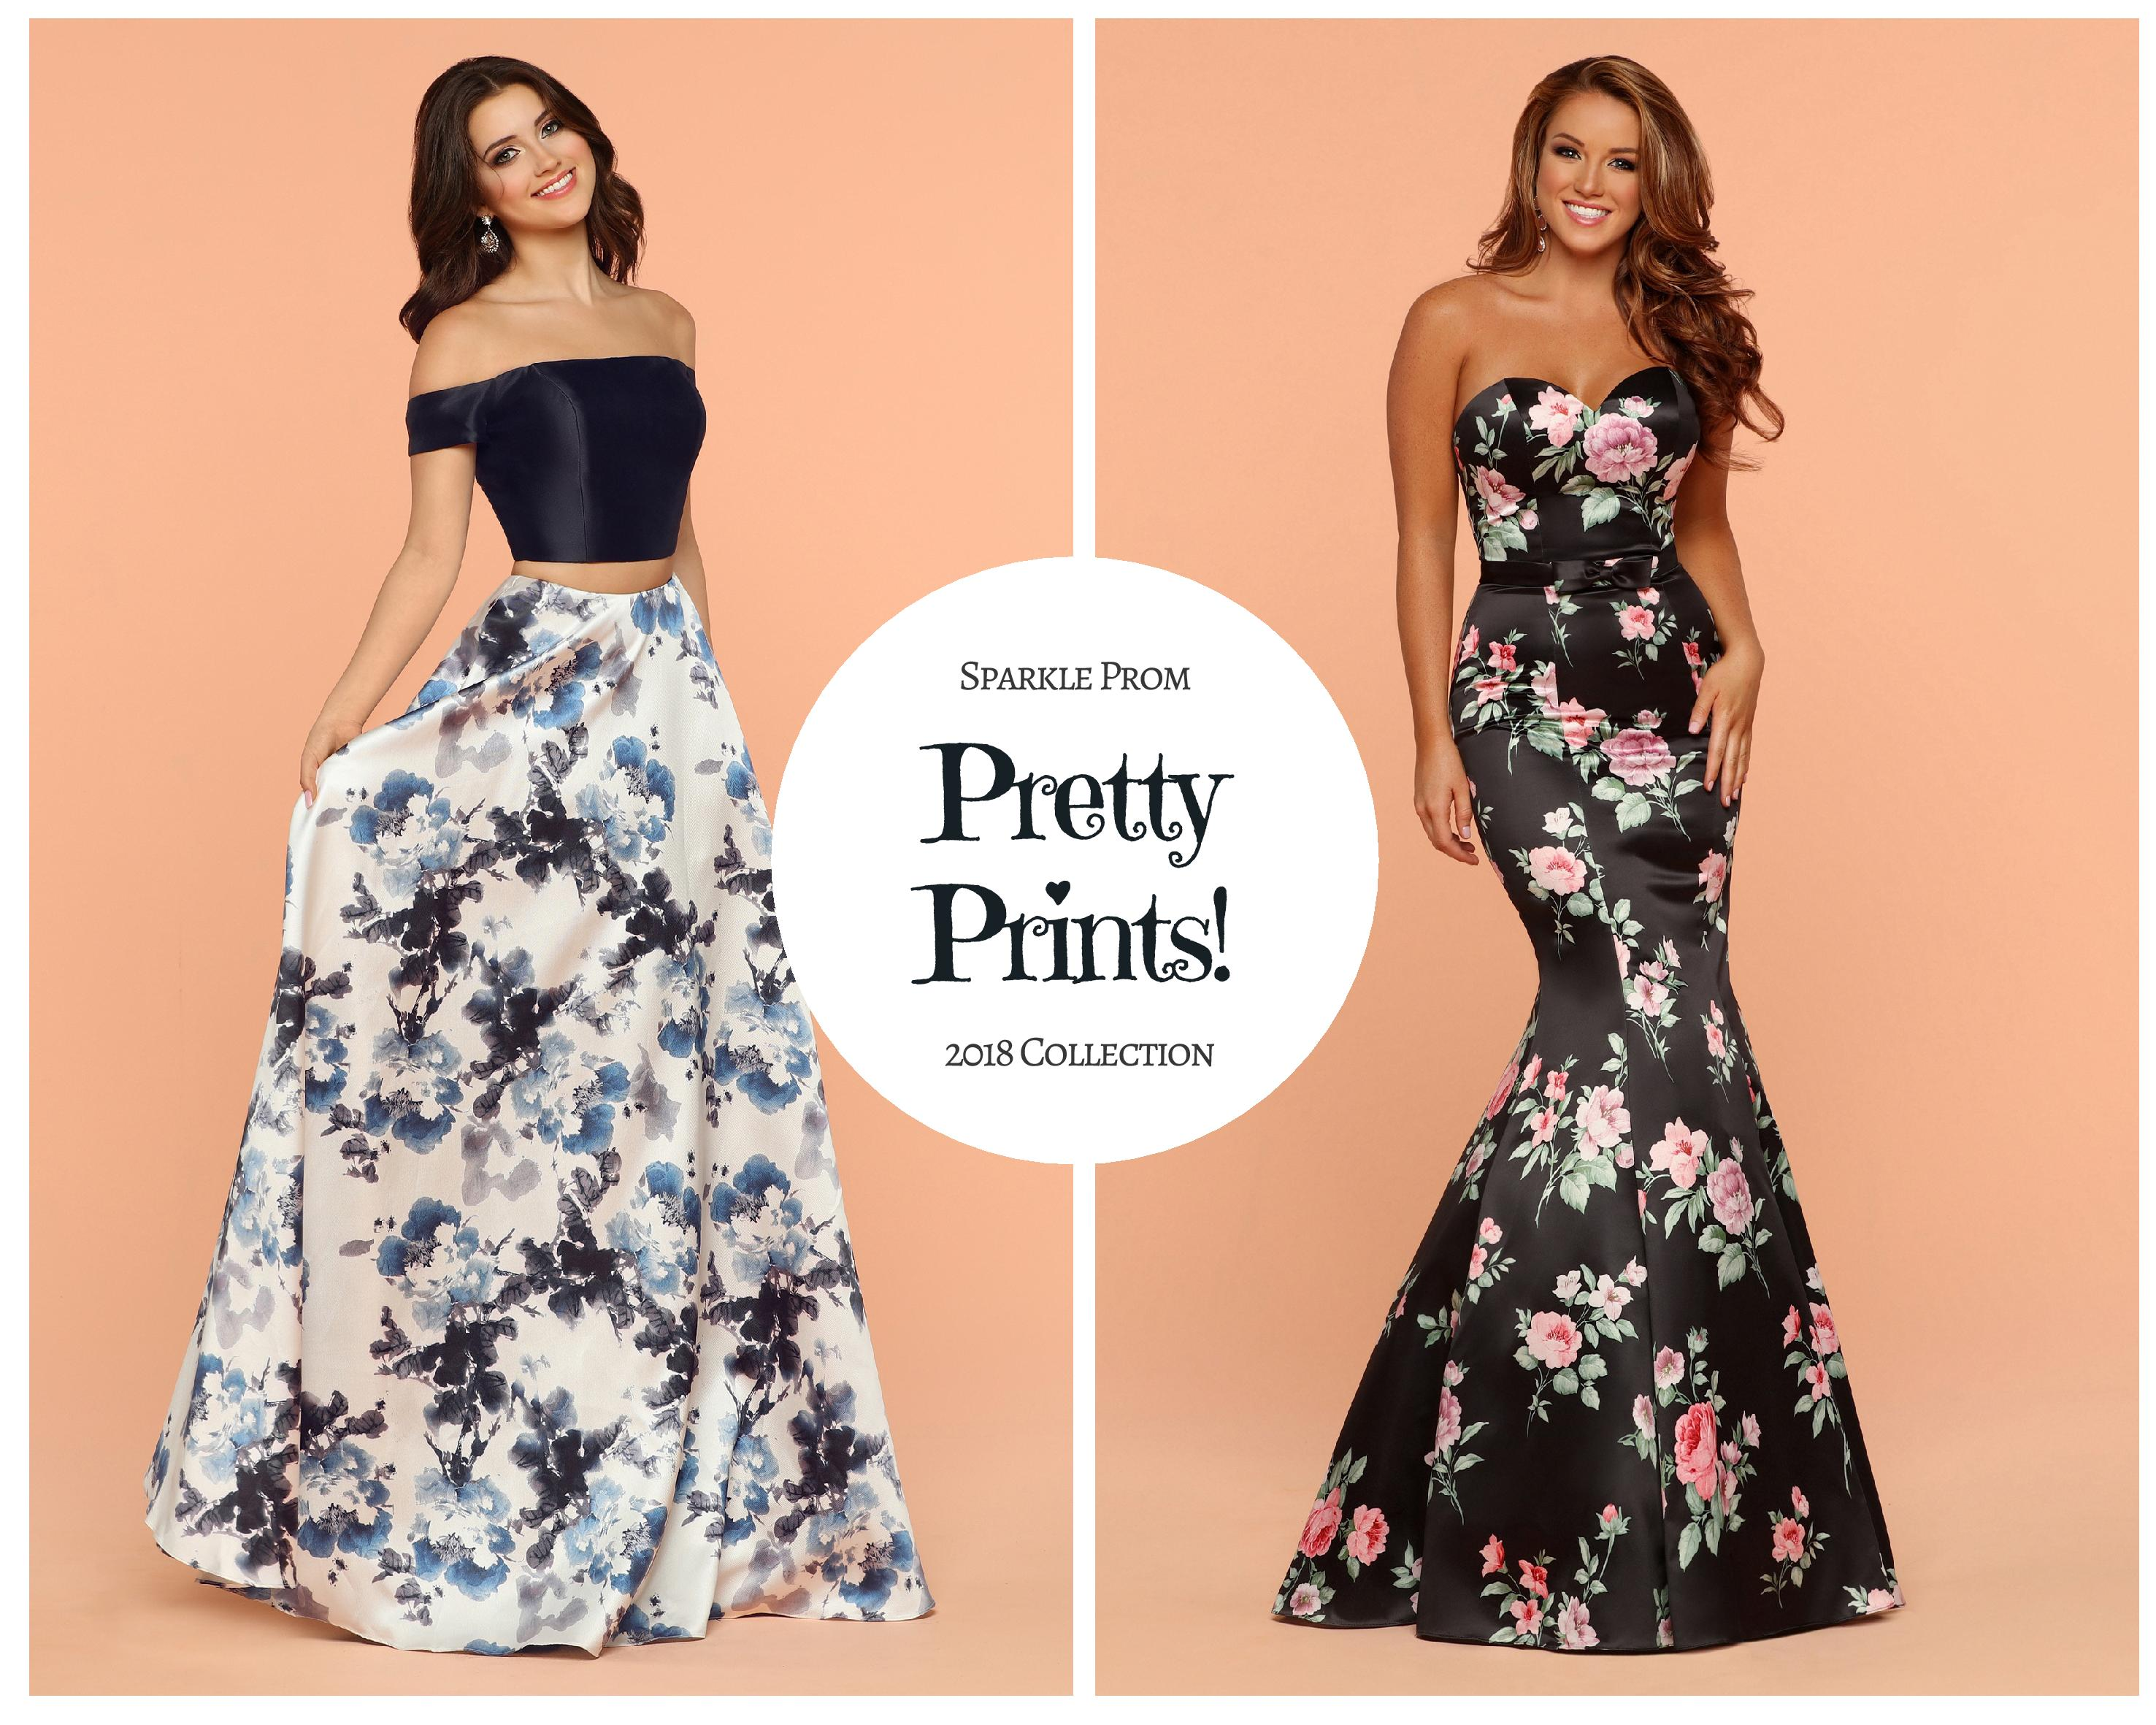 New! Sparkle Prom Collection: Pretty Print Dresses for Prom 2018